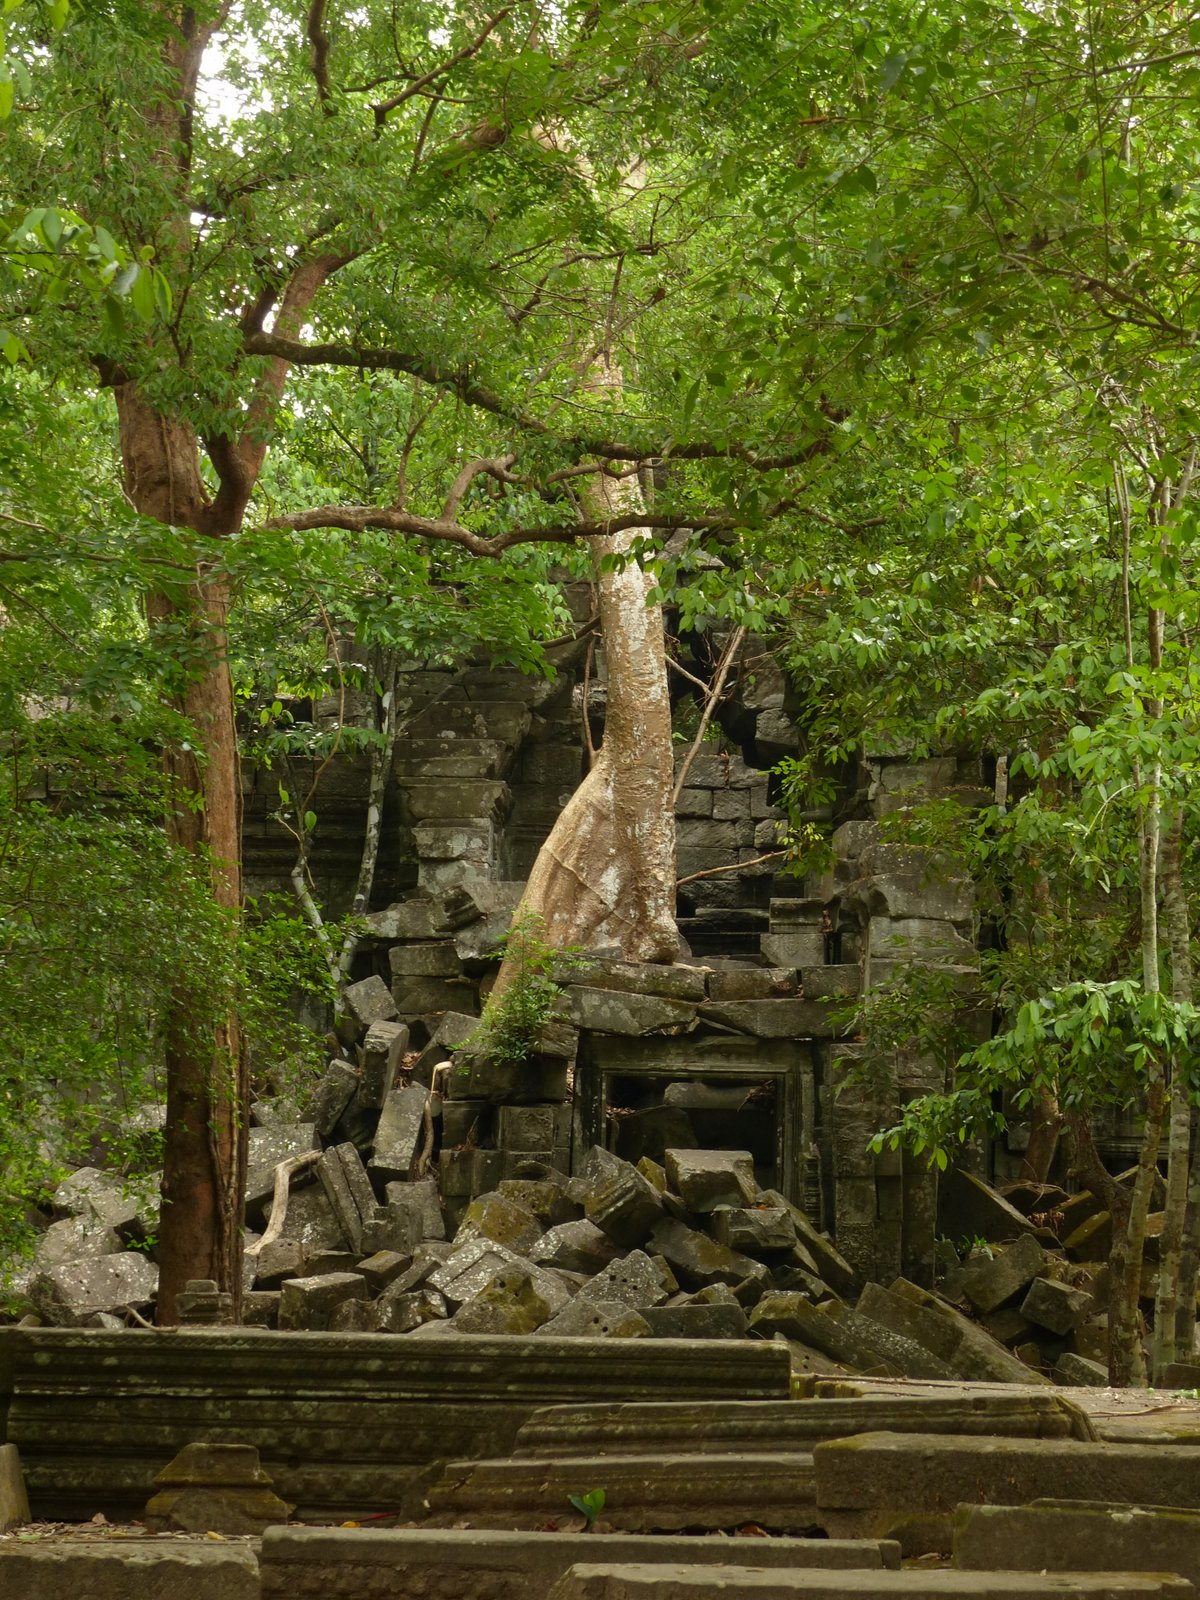 The West Gate and Beng Mealea has been taken over by banyan trees and jungle vines, toppling the walls and making the gate inaccessible. We had to climb the fallen stones to get inside the temple.